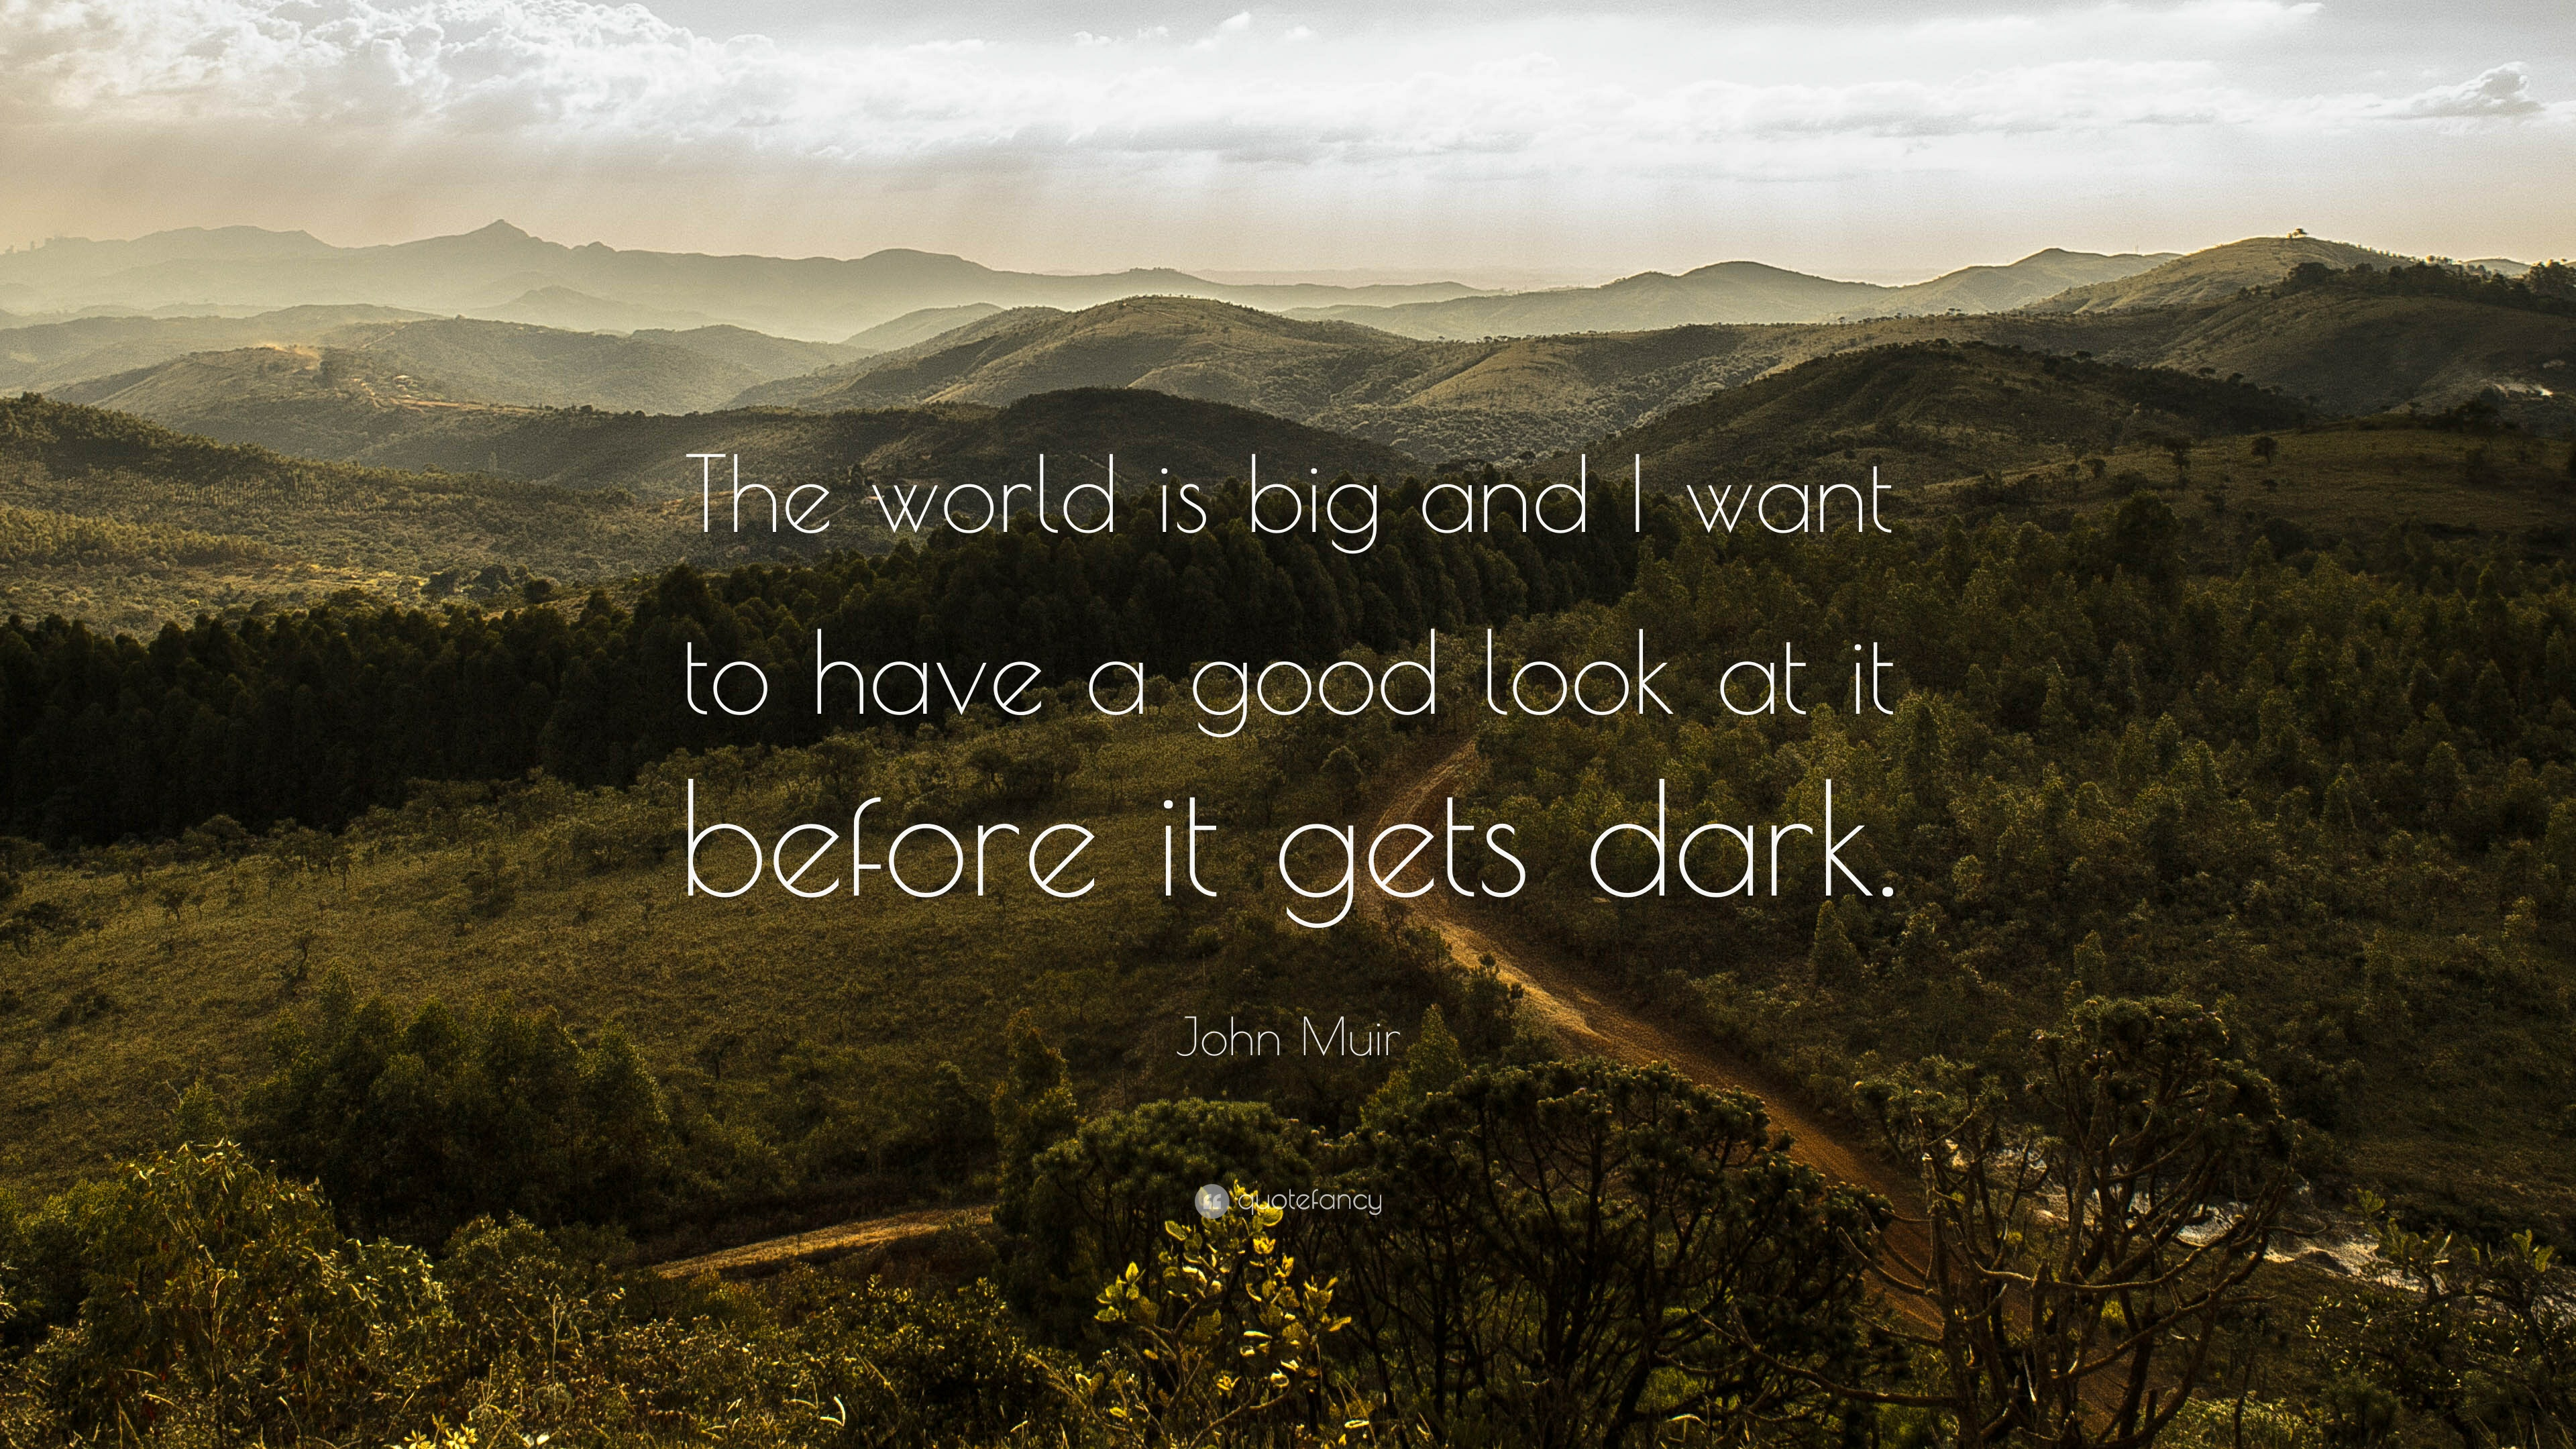 John Muir Quote: The world is big and I want to have a